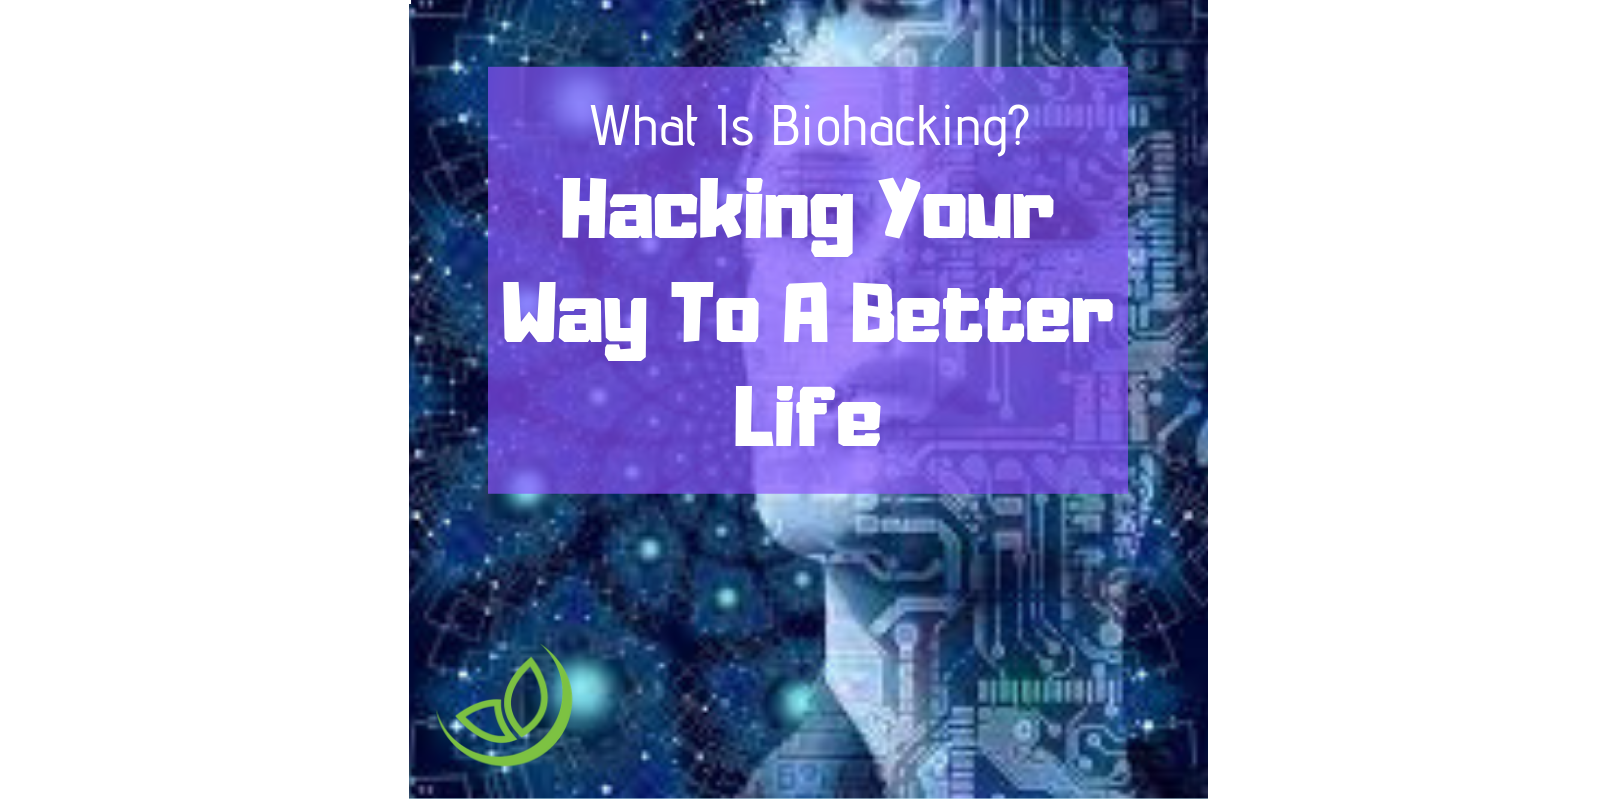 biohacking to feel better